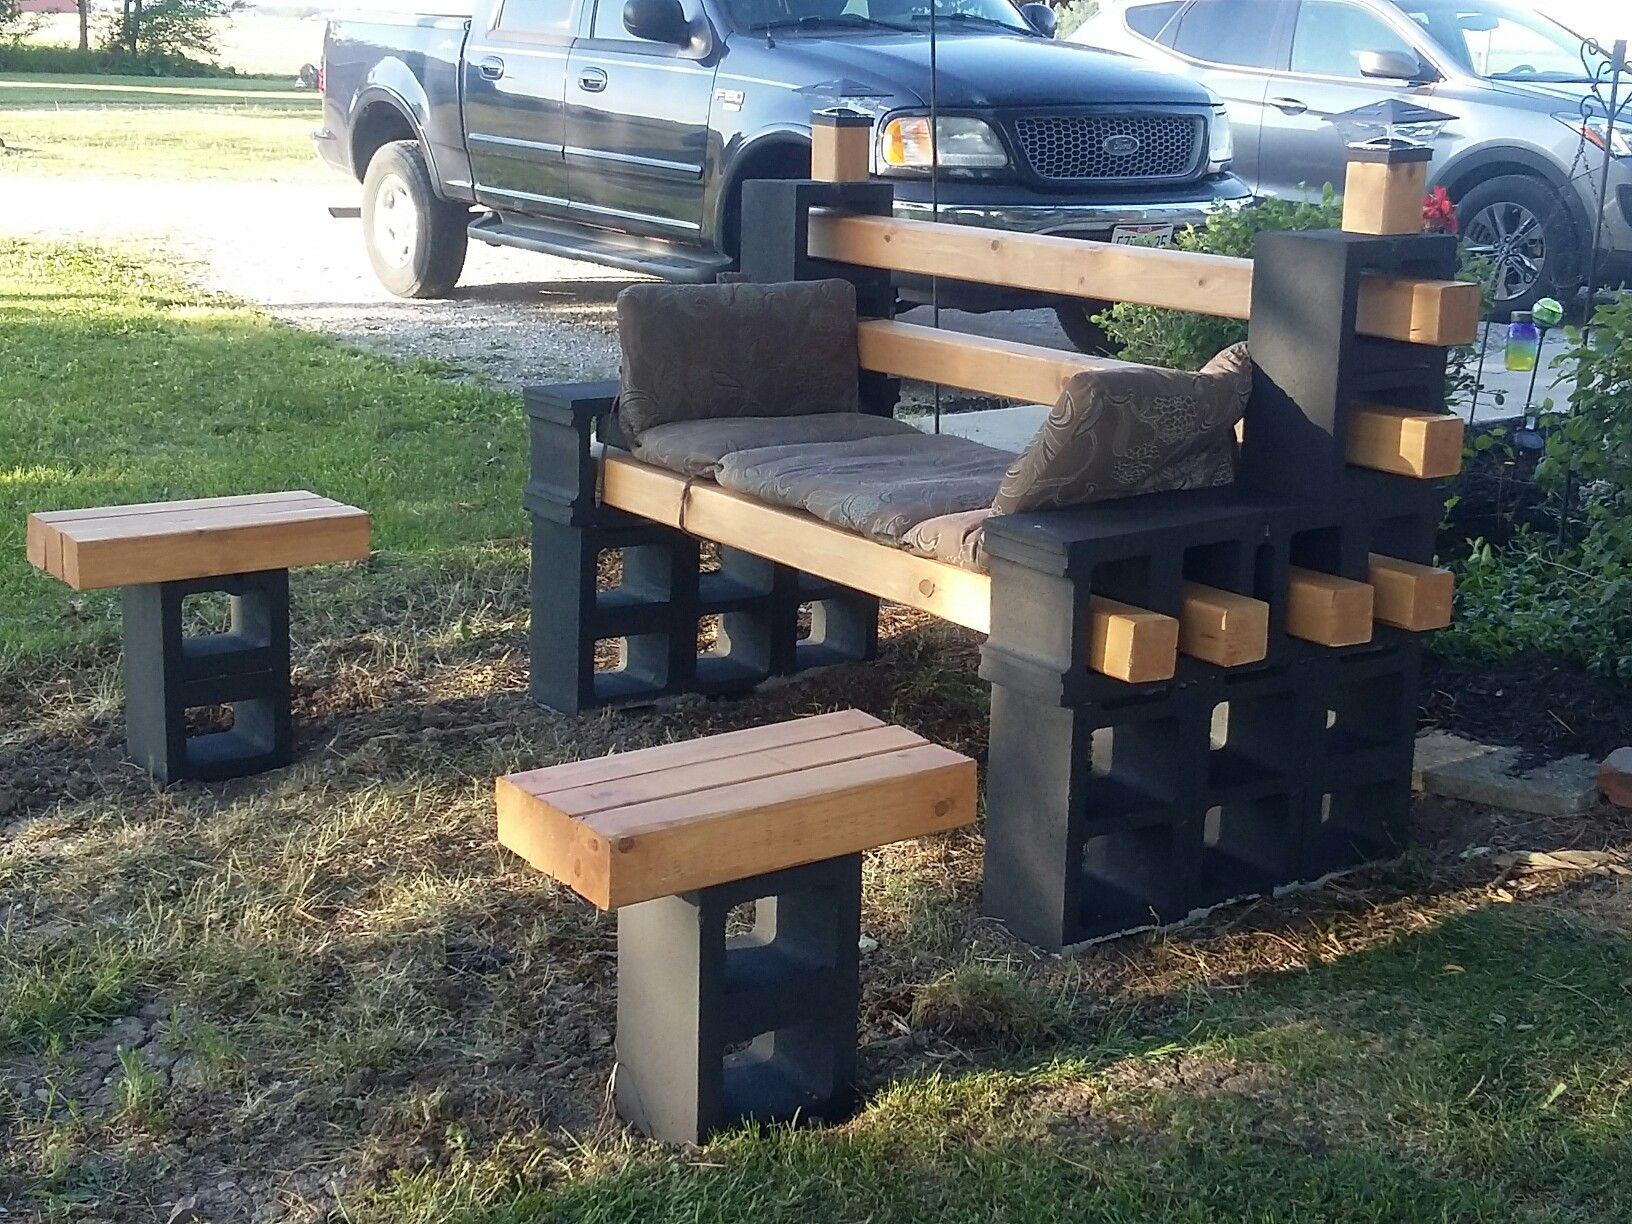 Cinder Block Bench And Tables I Built The Bench Using 12 Blocks Using 8 4x4s I Had Some Wood Le Cinder Block Furniture Cinder Block Garden Backyard Decor